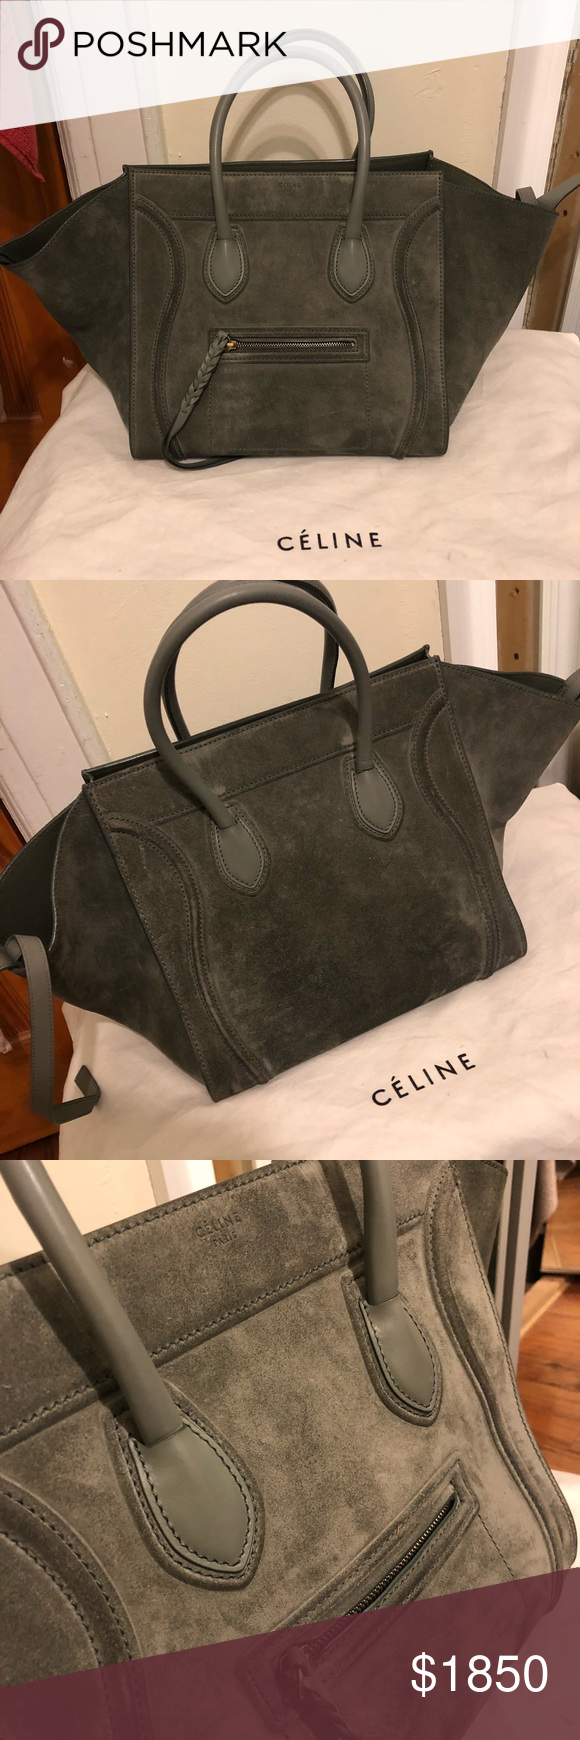 0c6b328f78 Authentic Celine Phantom Luggage Grey Tote Very good condition. Beautiful  grey suede